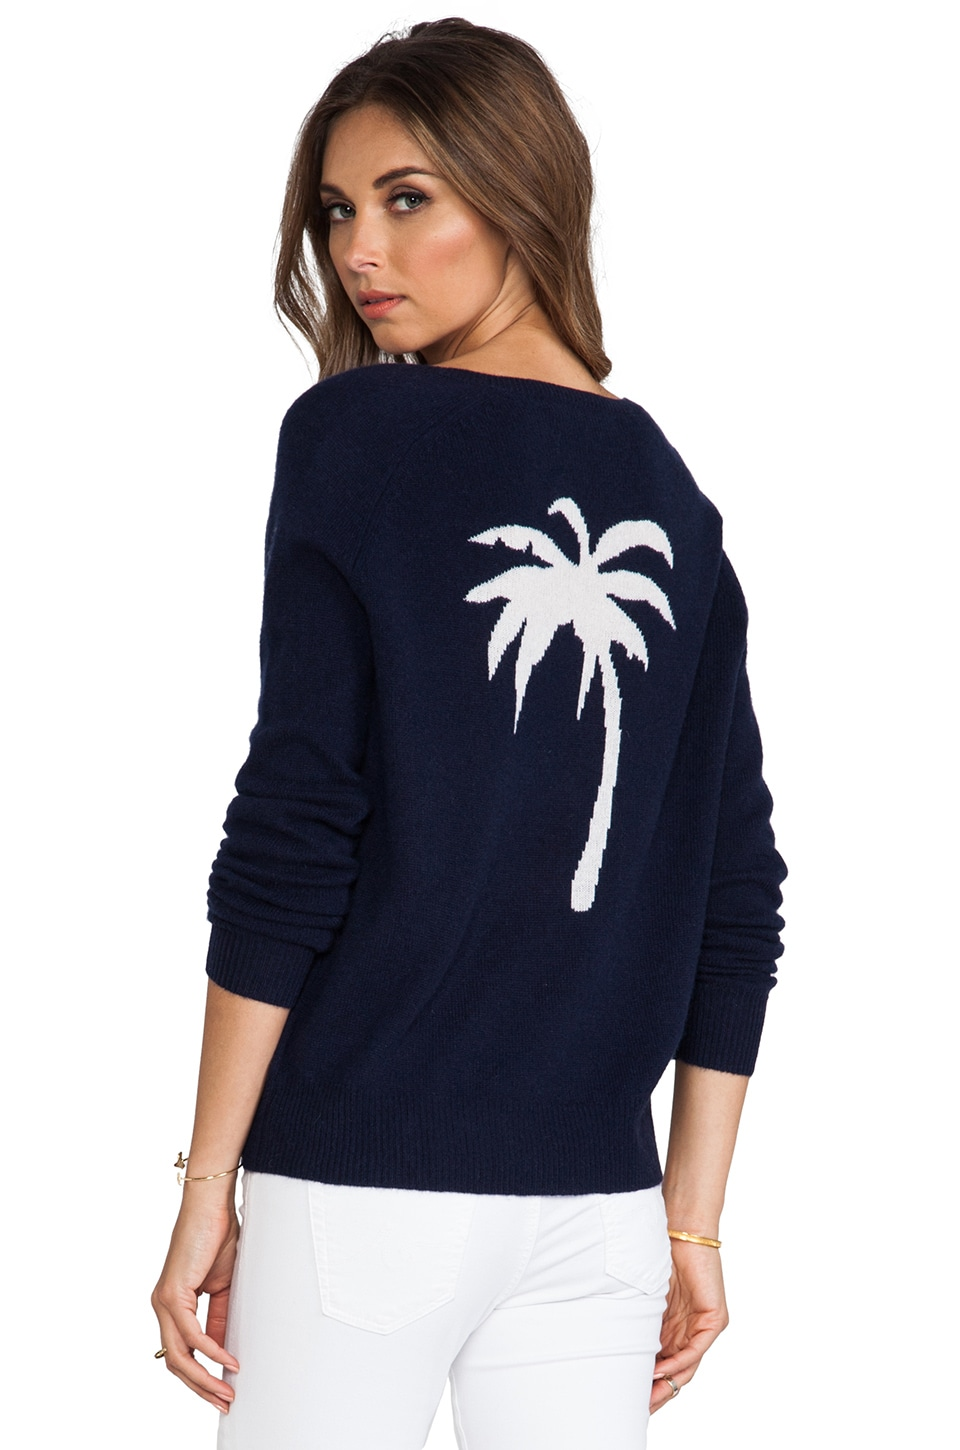 360 Sweater Palm Cashmere Sweater in Navy & Ivory Intarsia